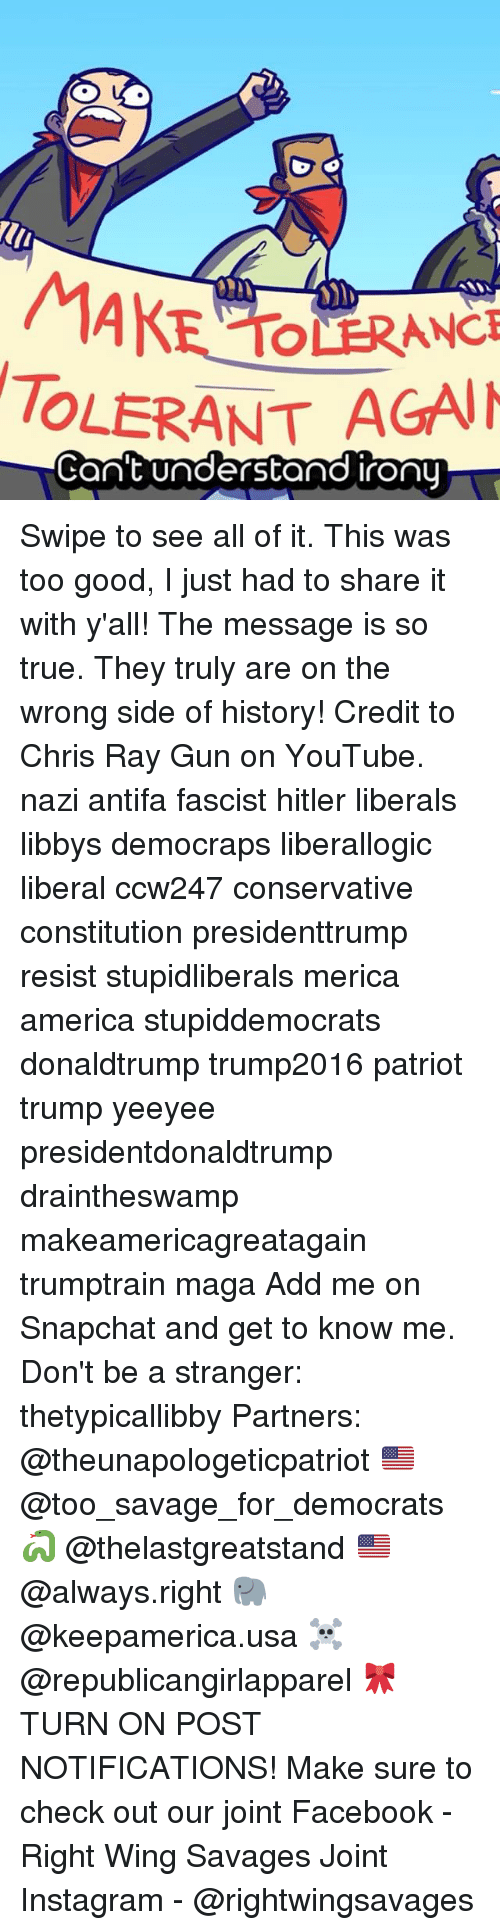 America, Facebook, and Instagram: MAKE  TOLERANT AGAIN  Can't understand irony Swipe to see all of it. This was too good, I just had to share it with y'all! The message is so true. They truly are on the wrong side of history! Credit to Chris Ray Gun on YouTube. nazi antifa fascist hitler liberals libbys democraps liberallogic liberal ccw247 conservative constitution presidenttrump resist stupidliberals merica america stupiddemocrats donaldtrump trump2016 patriot trump yeeyee presidentdonaldtrump draintheswamp makeamericagreatagain trumptrain maga Add me on Snapchat and get to know me. Don't be a stranger: thetypicallibby Partners: @theunapologeticpatriot 🇺🇸 @too_savage_for_democrats 🐍 @thelastgreatstand 🇺🇸 @always.right 🐘 @keepamerica.usa ☠️ @republicangirlapparel 🎀 TURN ON POST NOTIFICATIONS! Make sure to check out our joint Facebook - Right Wing Savages Joint Instagram - @rightwingsavages